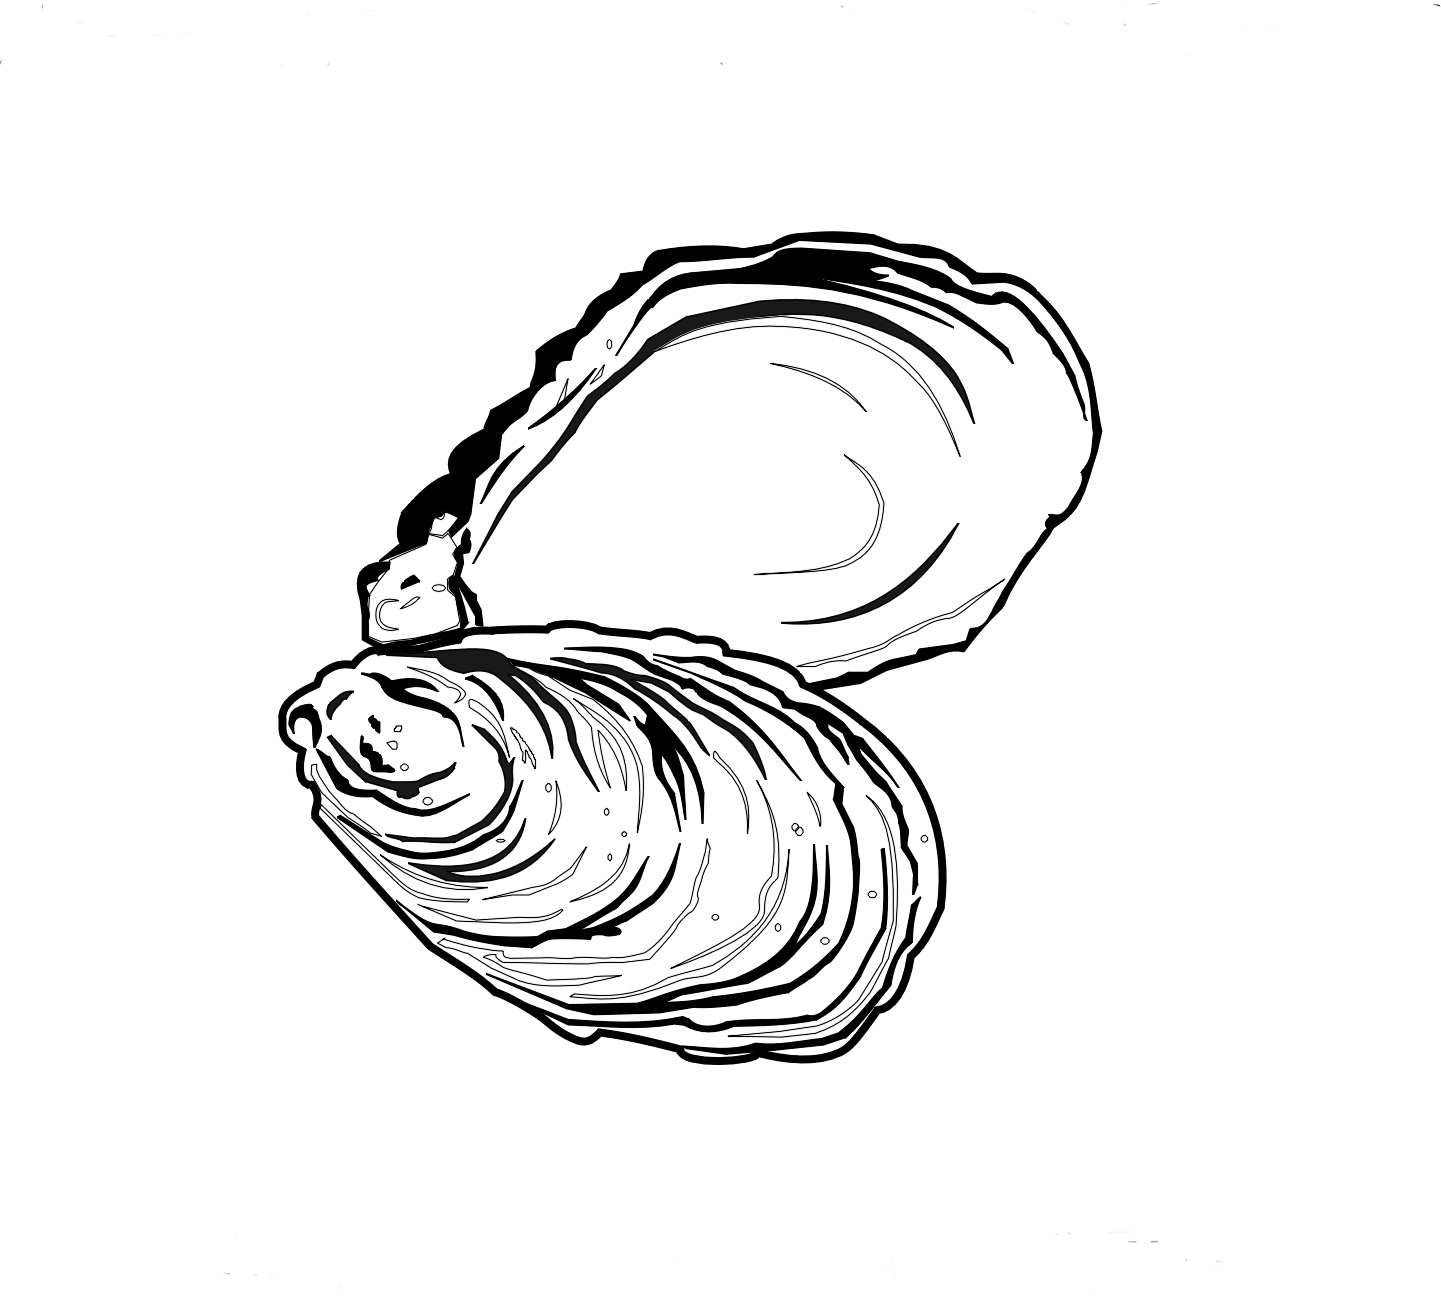 oyster clipart black and white #8